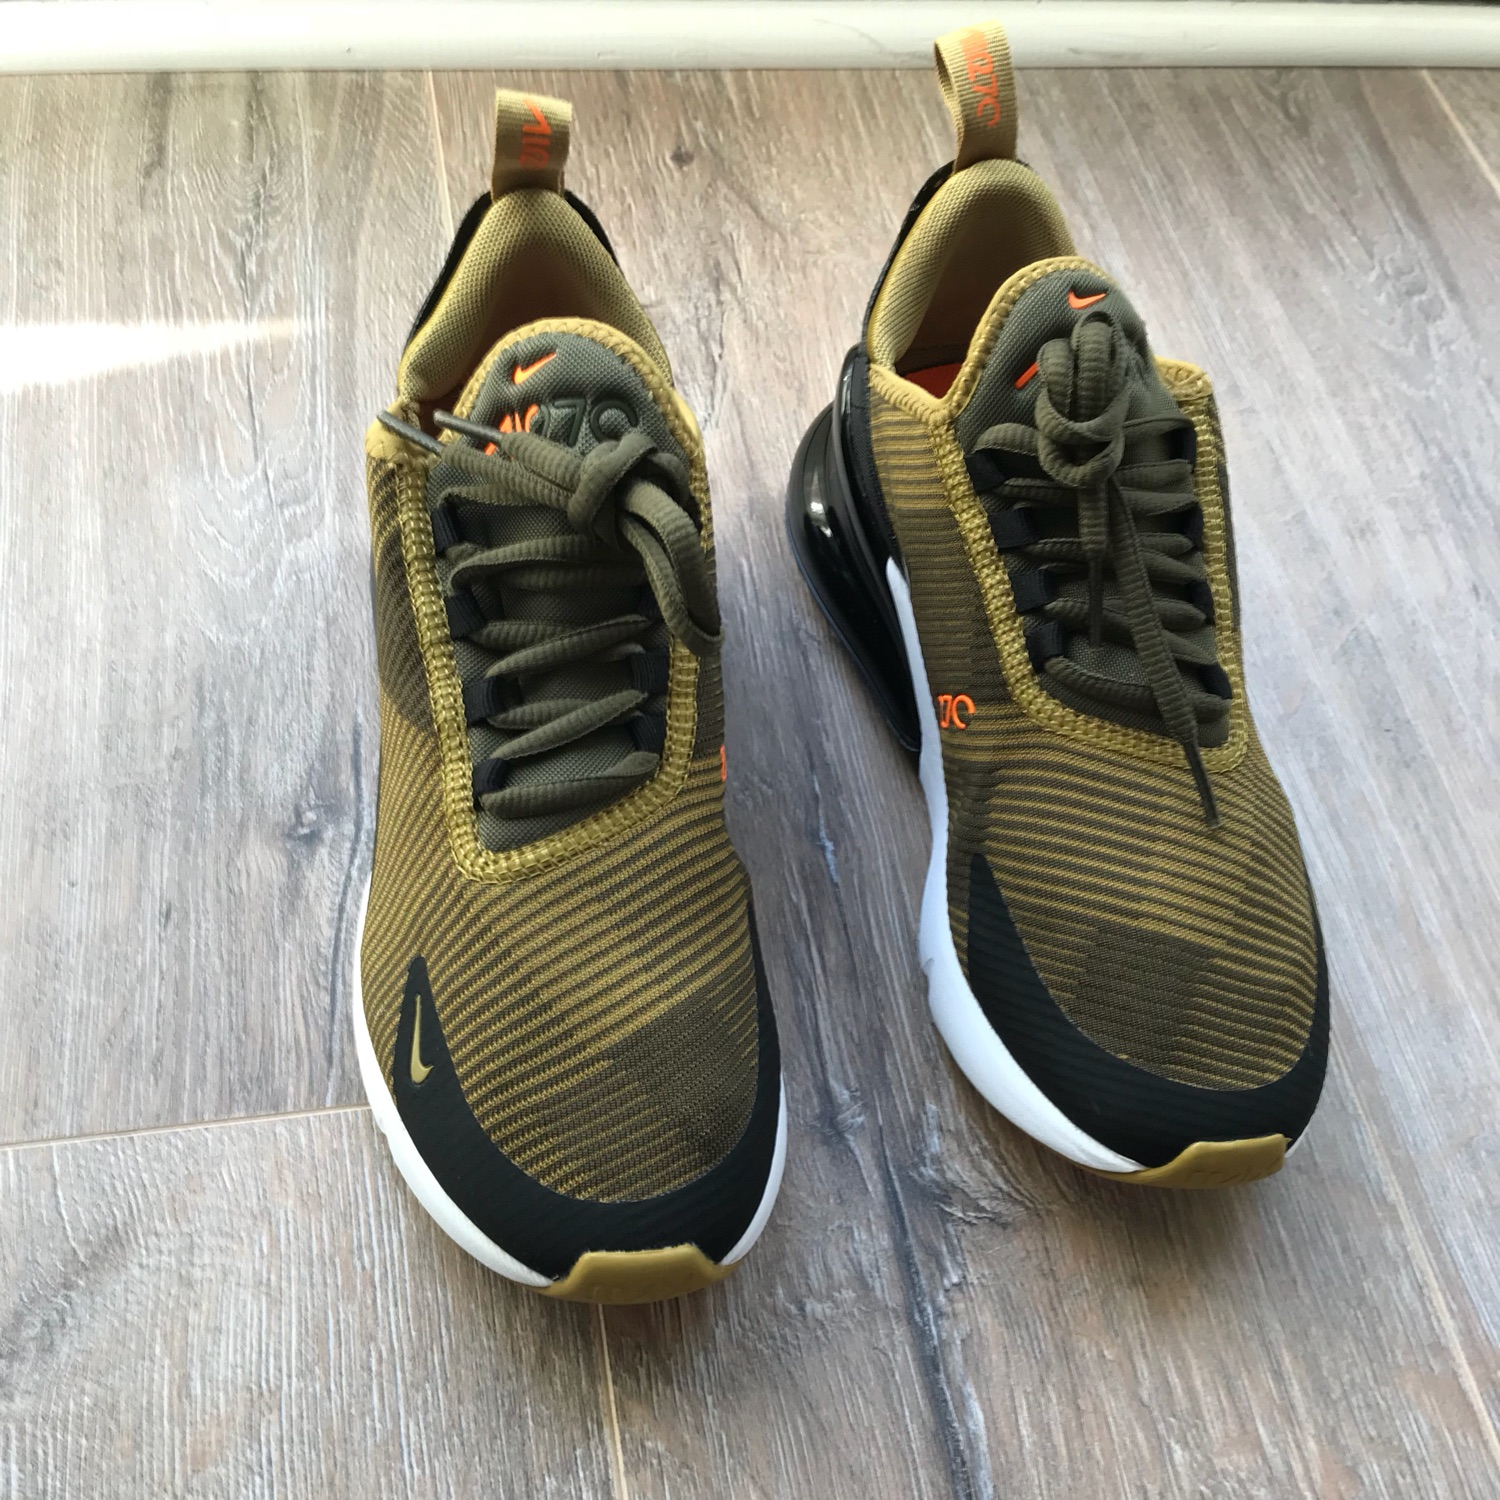 size 40 4c5fb a7efa Nike Air Max 270 Olive - Youth Uk 4.5